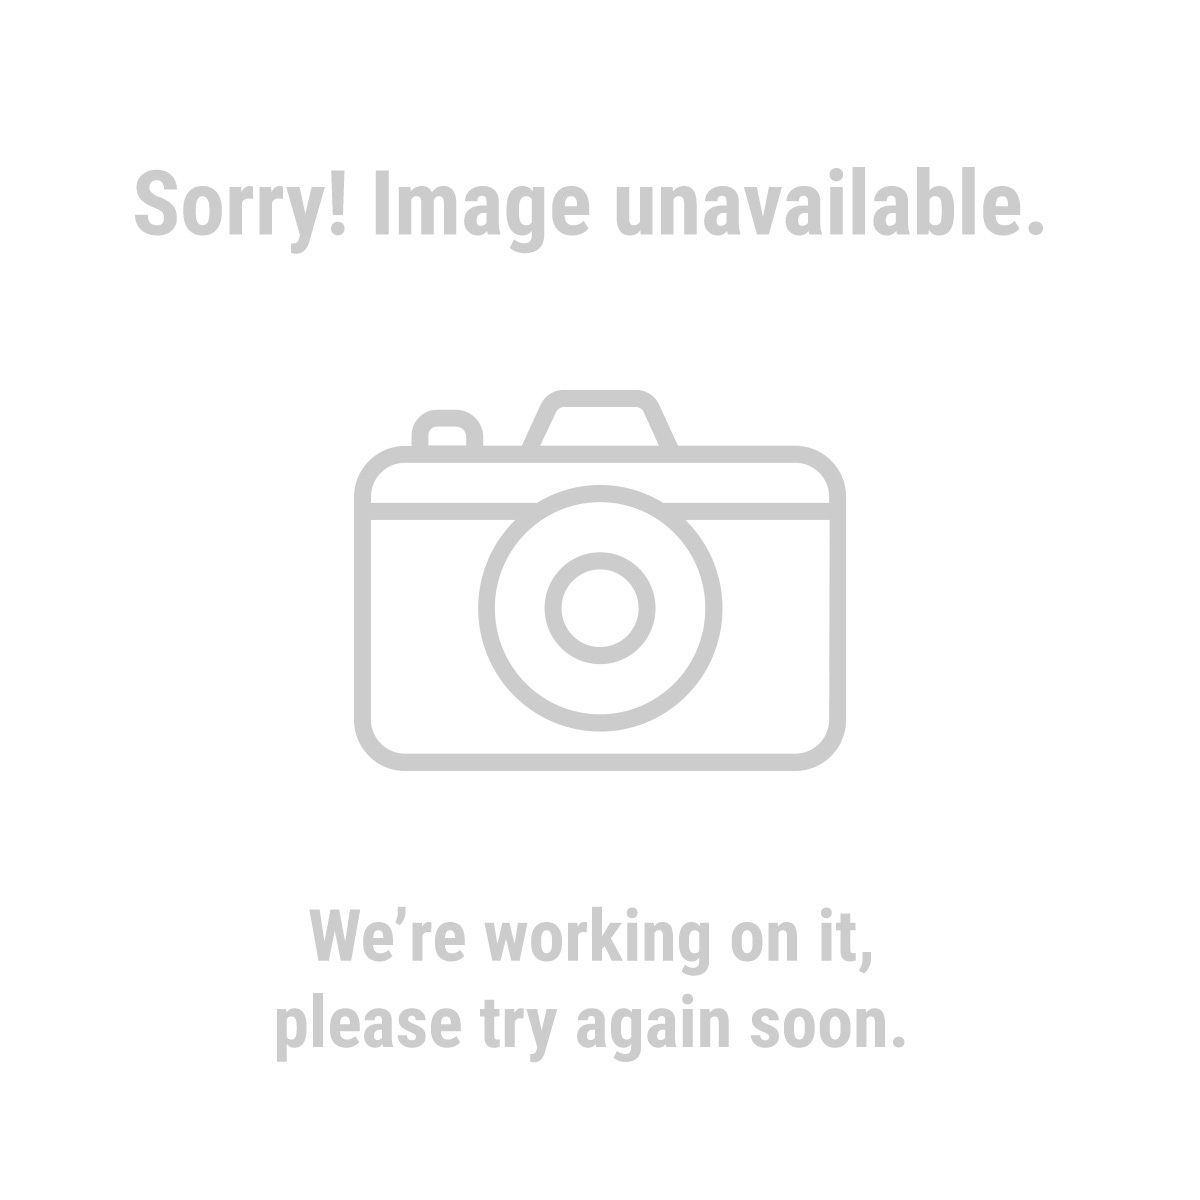 Warrior 69967 7 Piece 220 Grit Aluminum Oxide Sandpaper Sheets